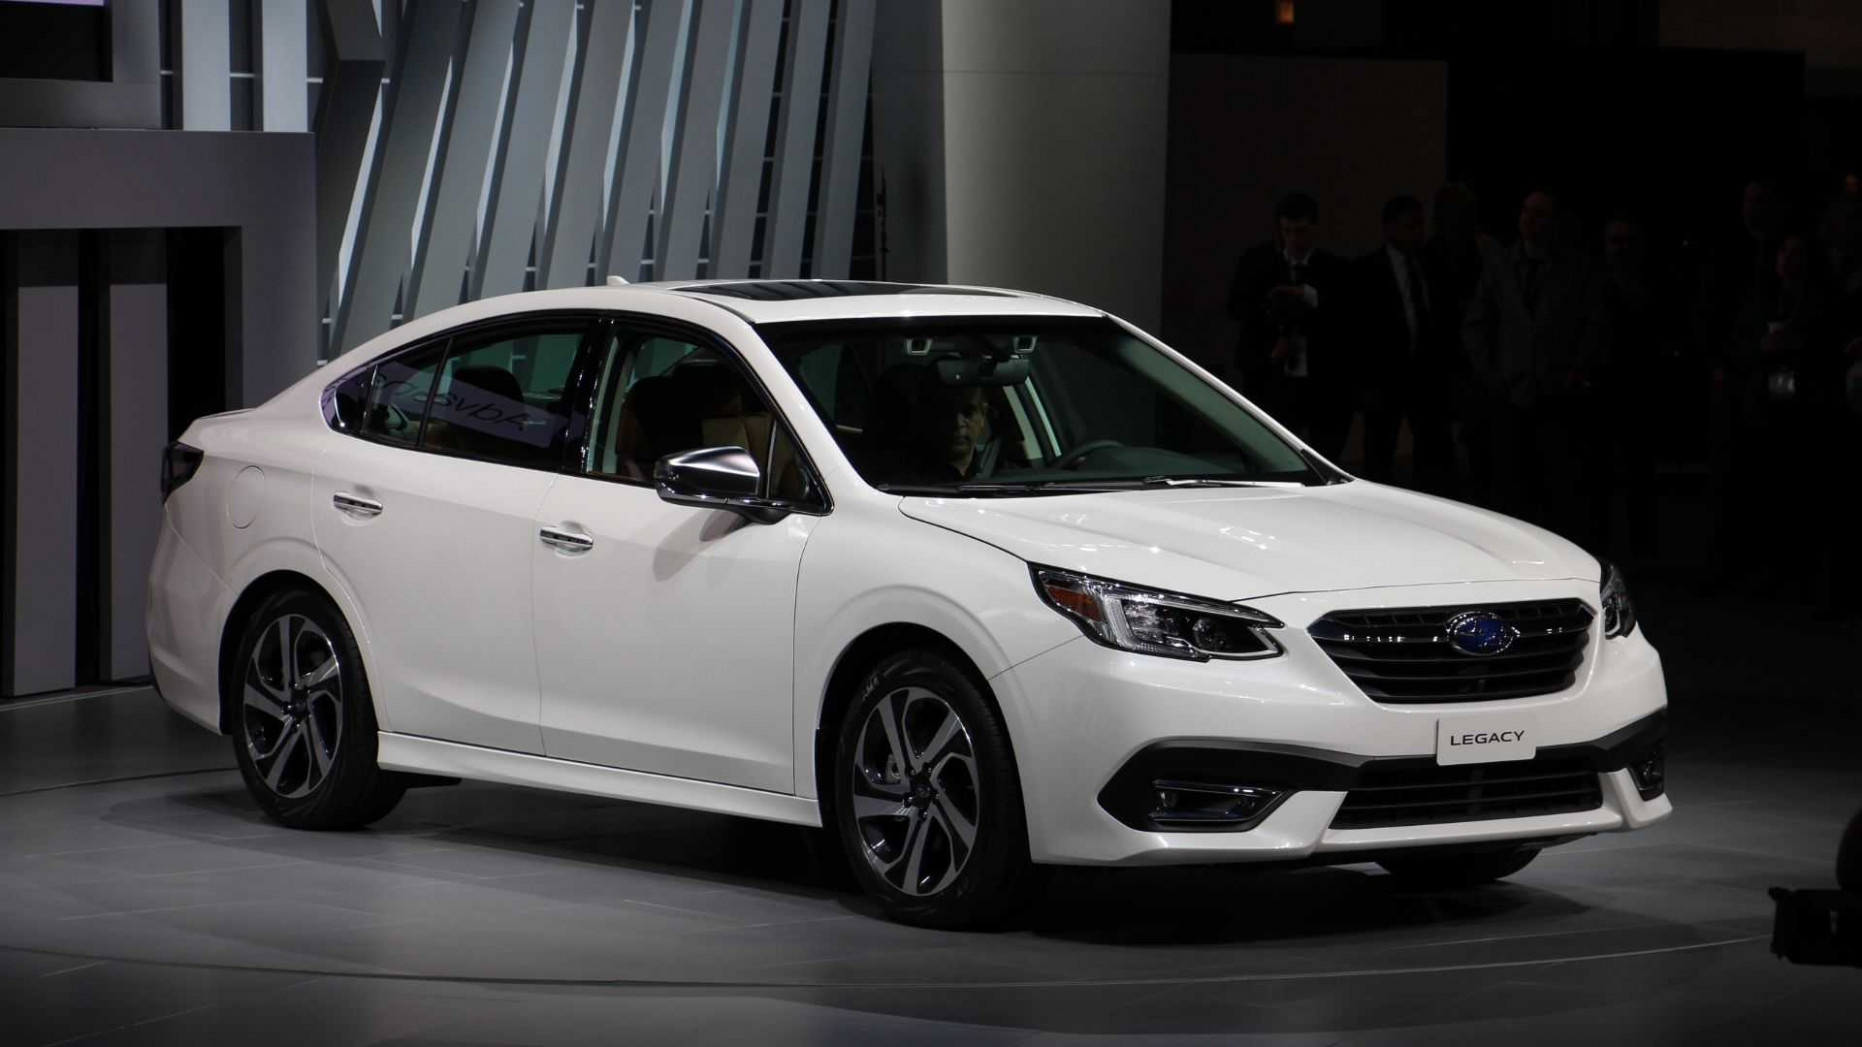 Most Expensive 6 Subaru Legacy Costs $6,6 - subaru legacy 2020 price